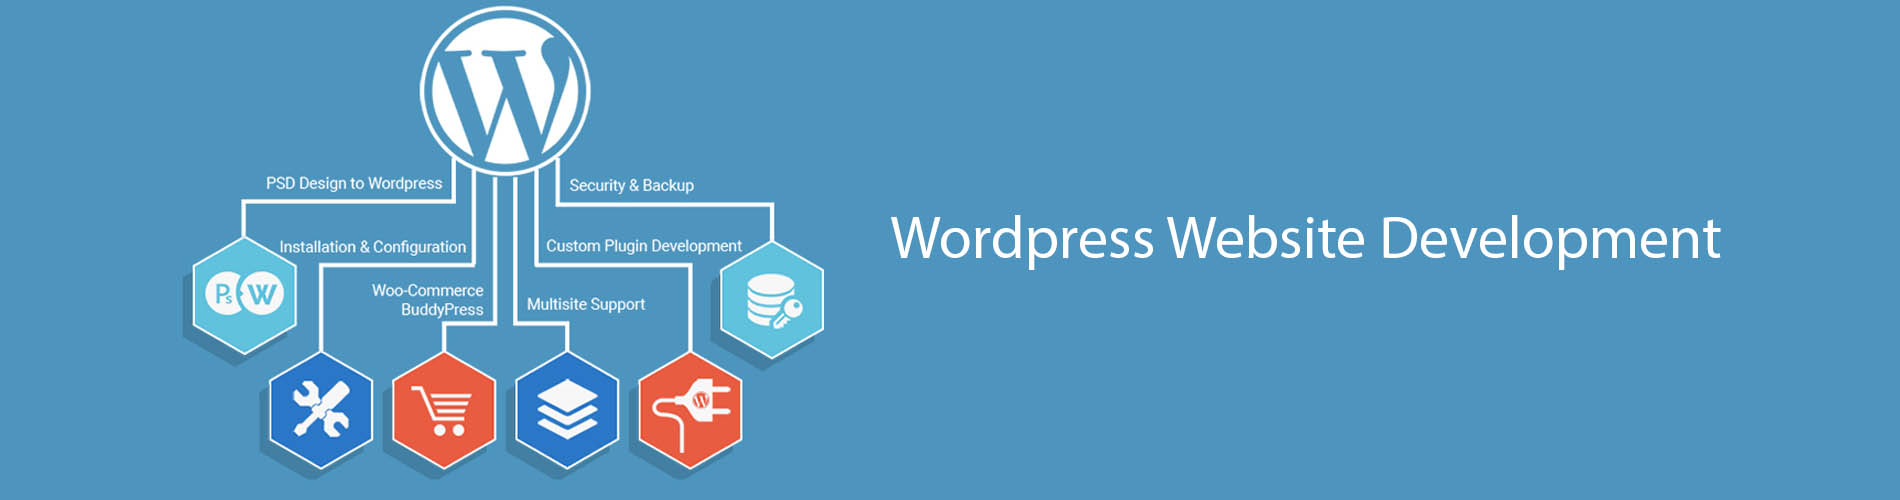 wordpress-website-developement-company